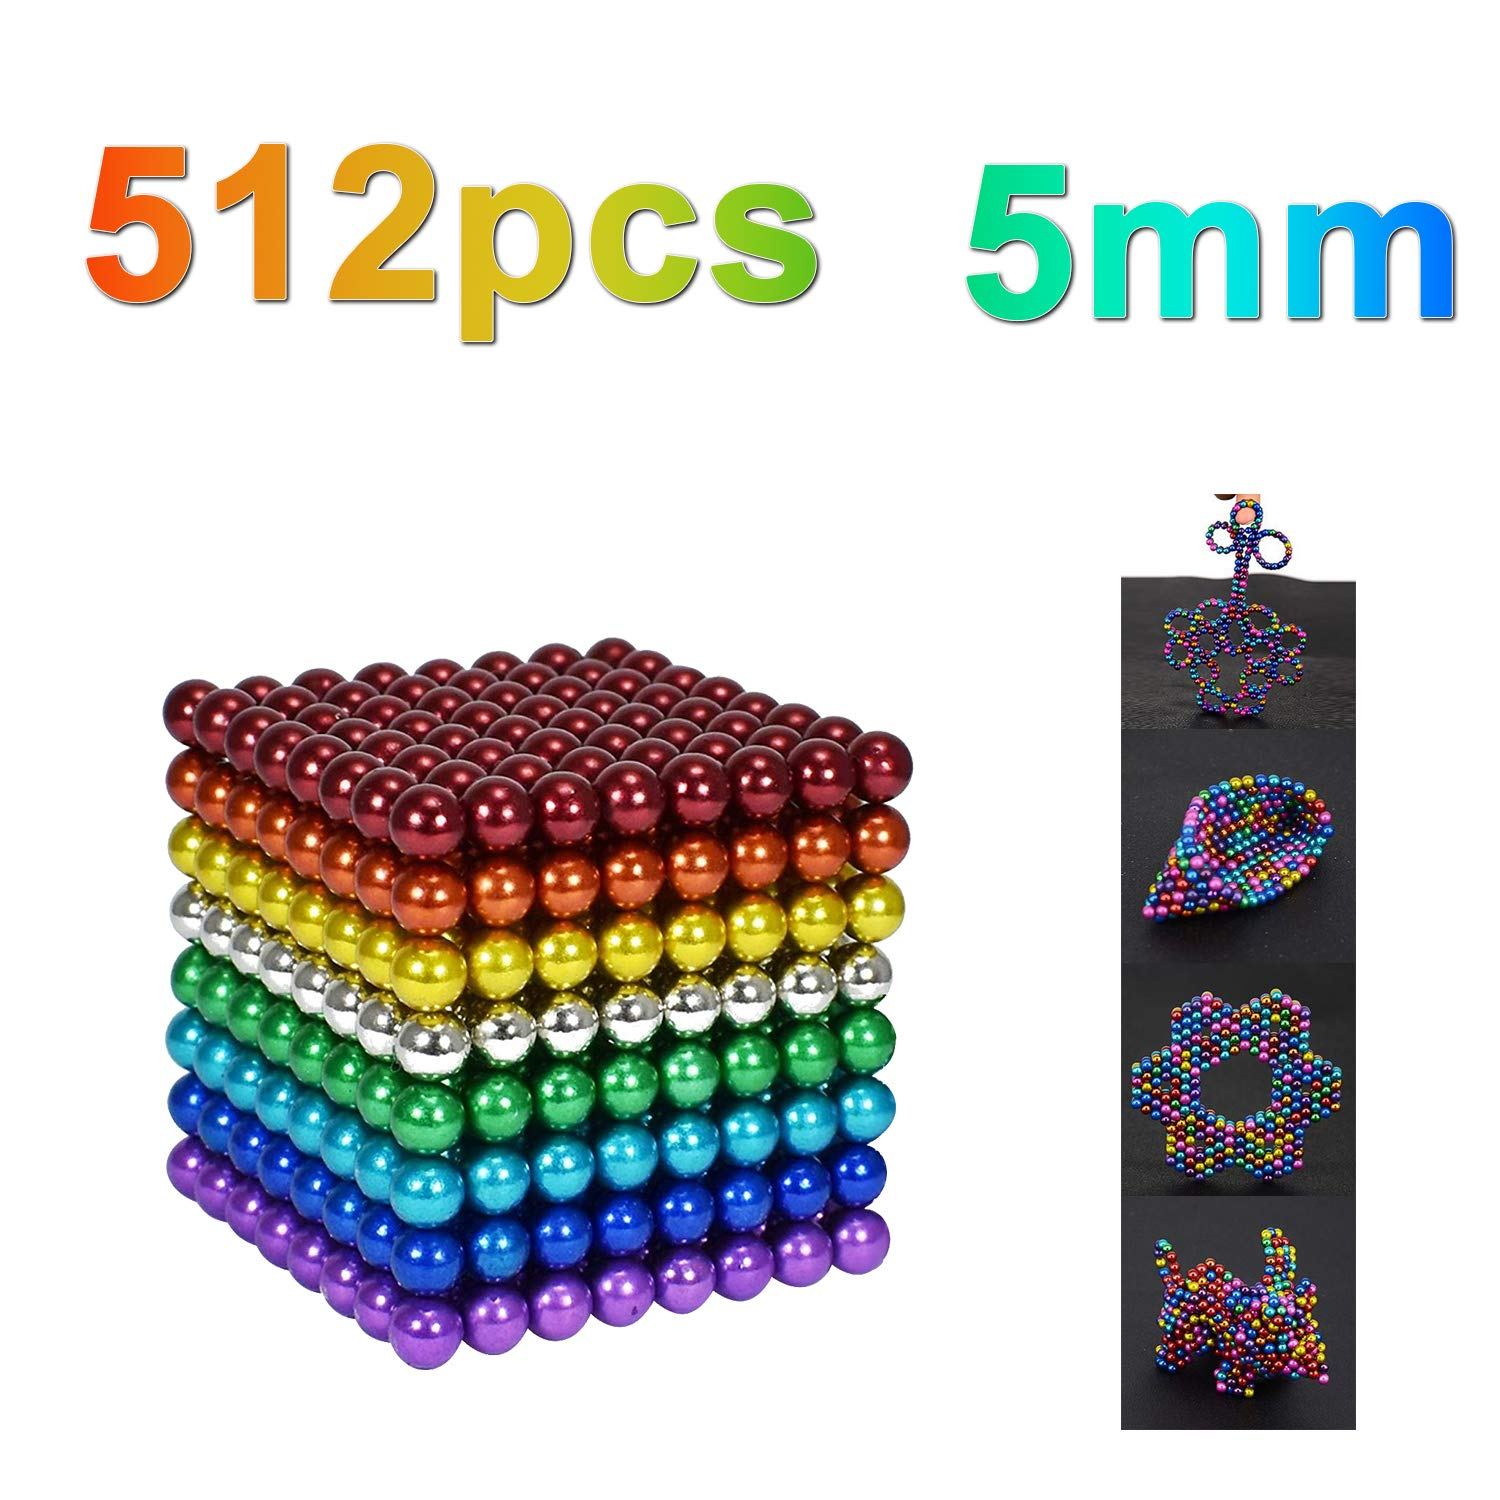 DOTSOG 512 Pieces 5mm Sculpture Building Blocks Toys for Intelligence DIY Educational Toys& Stress Relief for Adults by DOTSOG